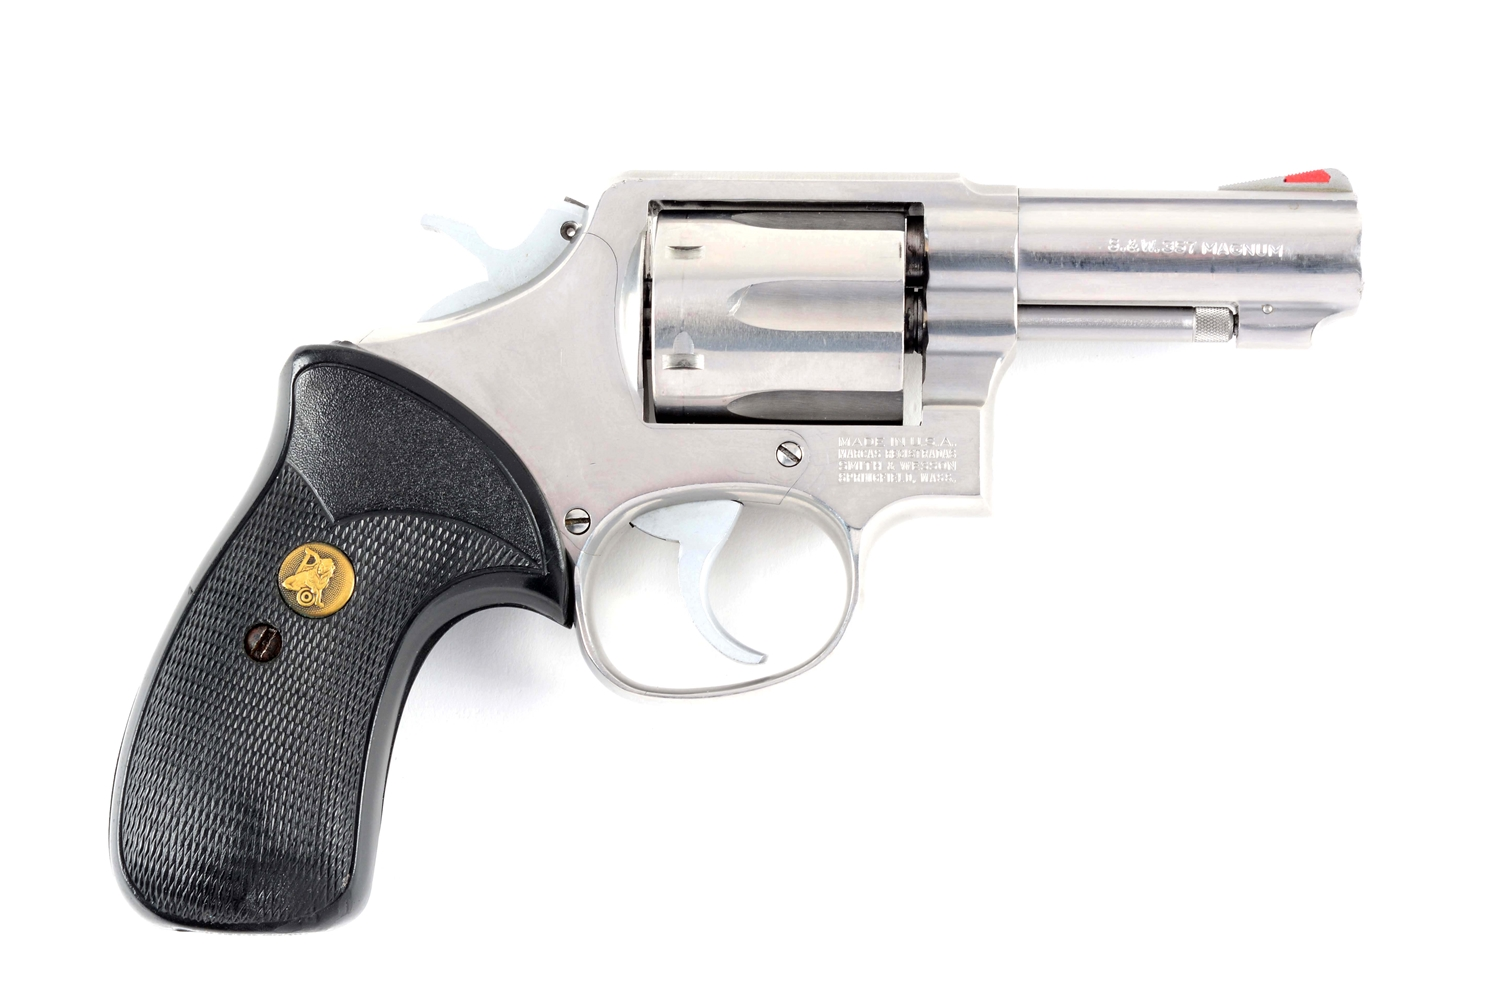 (M) S&W Model 65-3 Double Action Revolver.